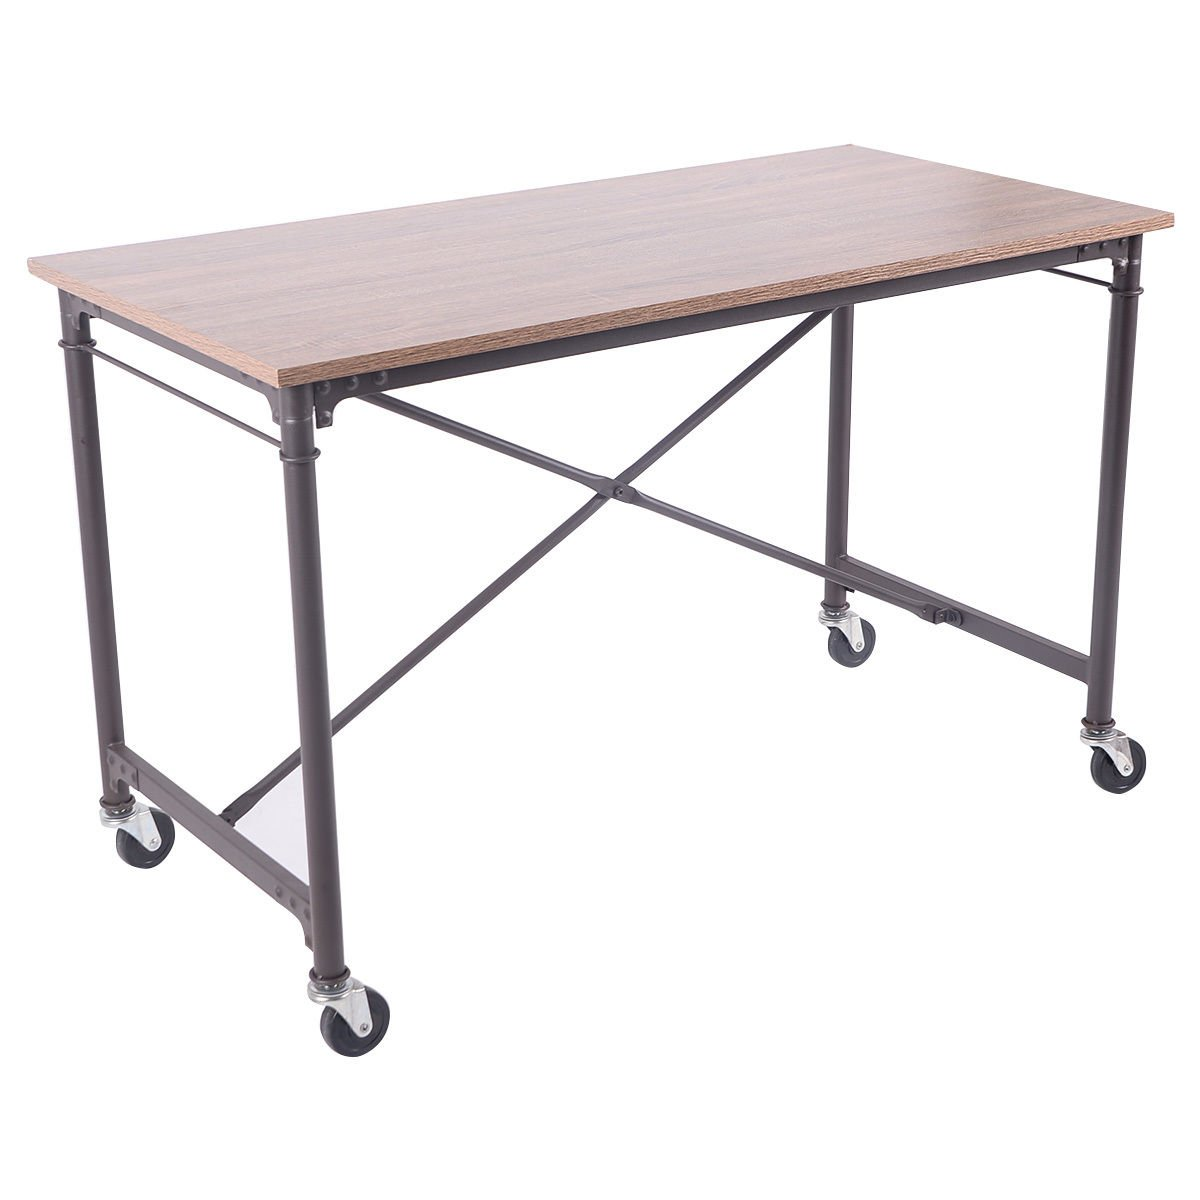 TANGKULA Computer Desk Laptop Writing Table Melamine Surface Wheels Home Office Furniture